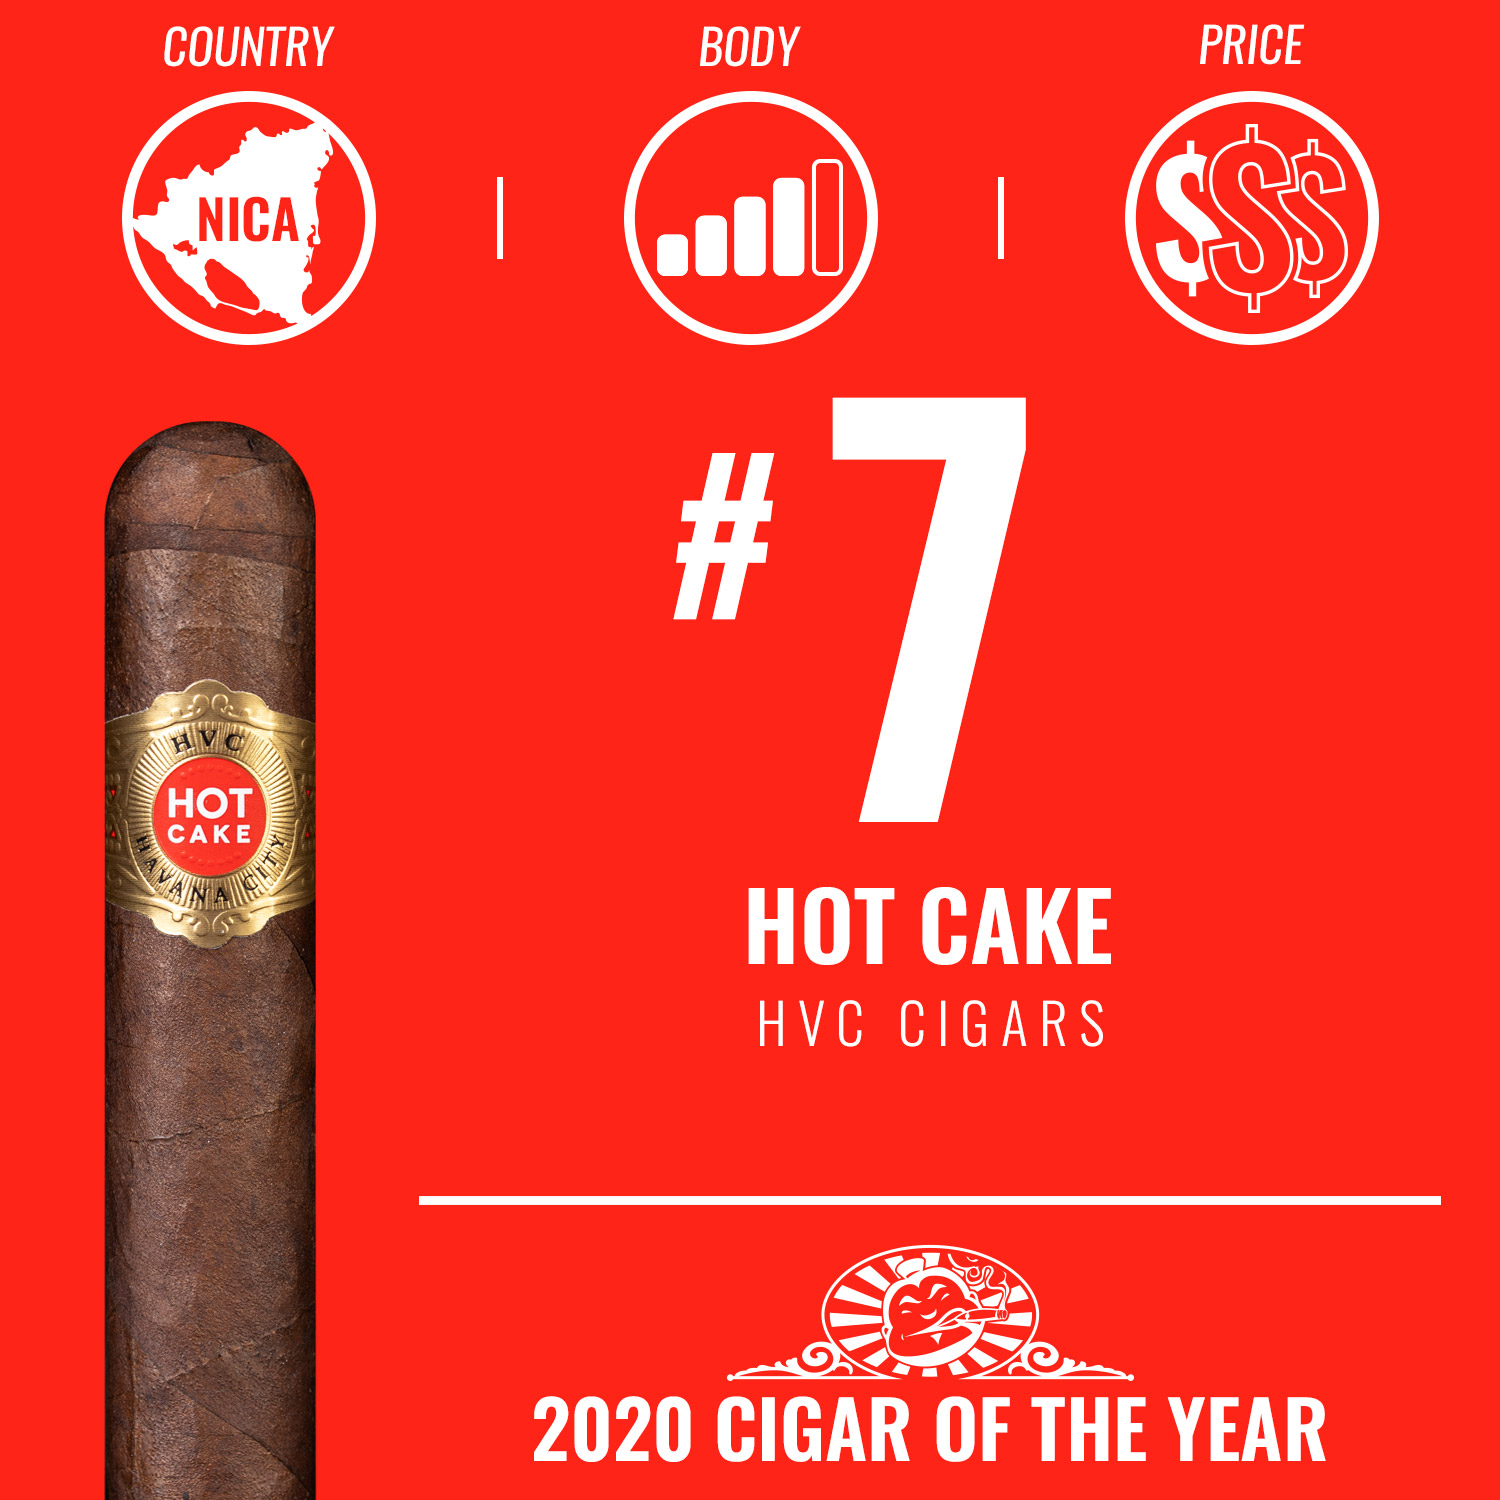 HVC Hot Cake No. 7 Cigar of the Year 2020